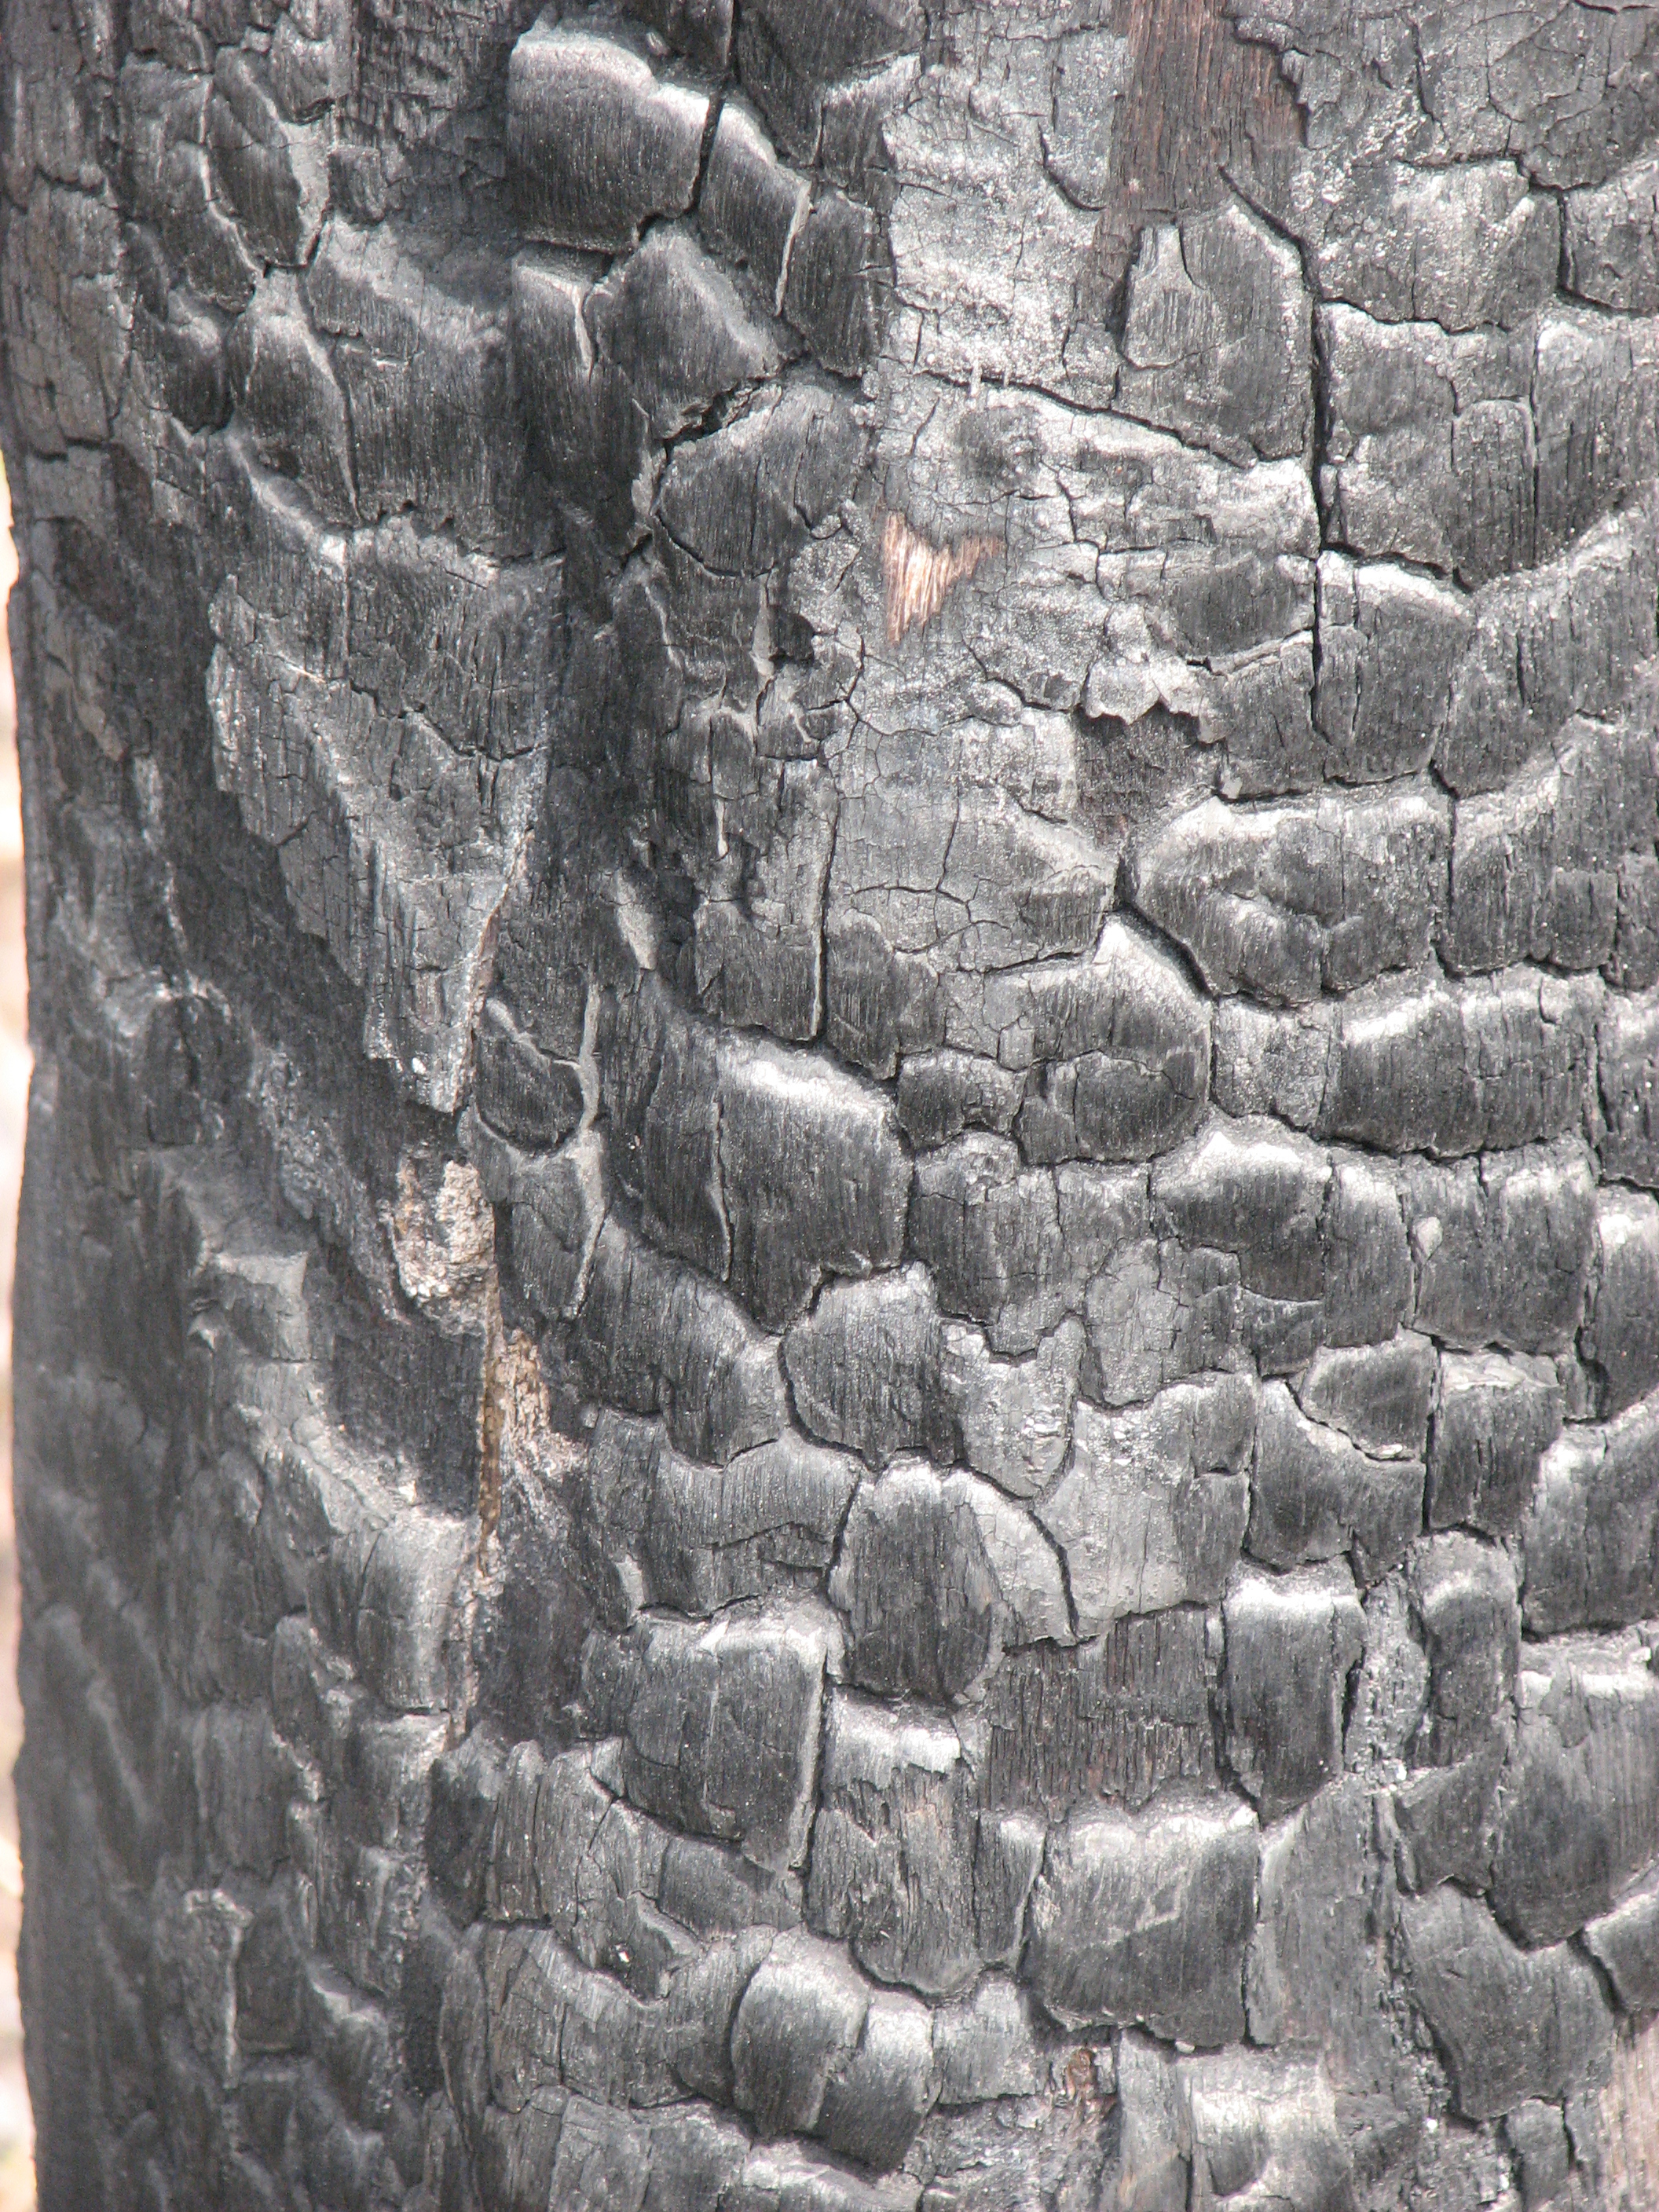 Charcoaled Wood 5 by CharadeTextures on DeviantArt